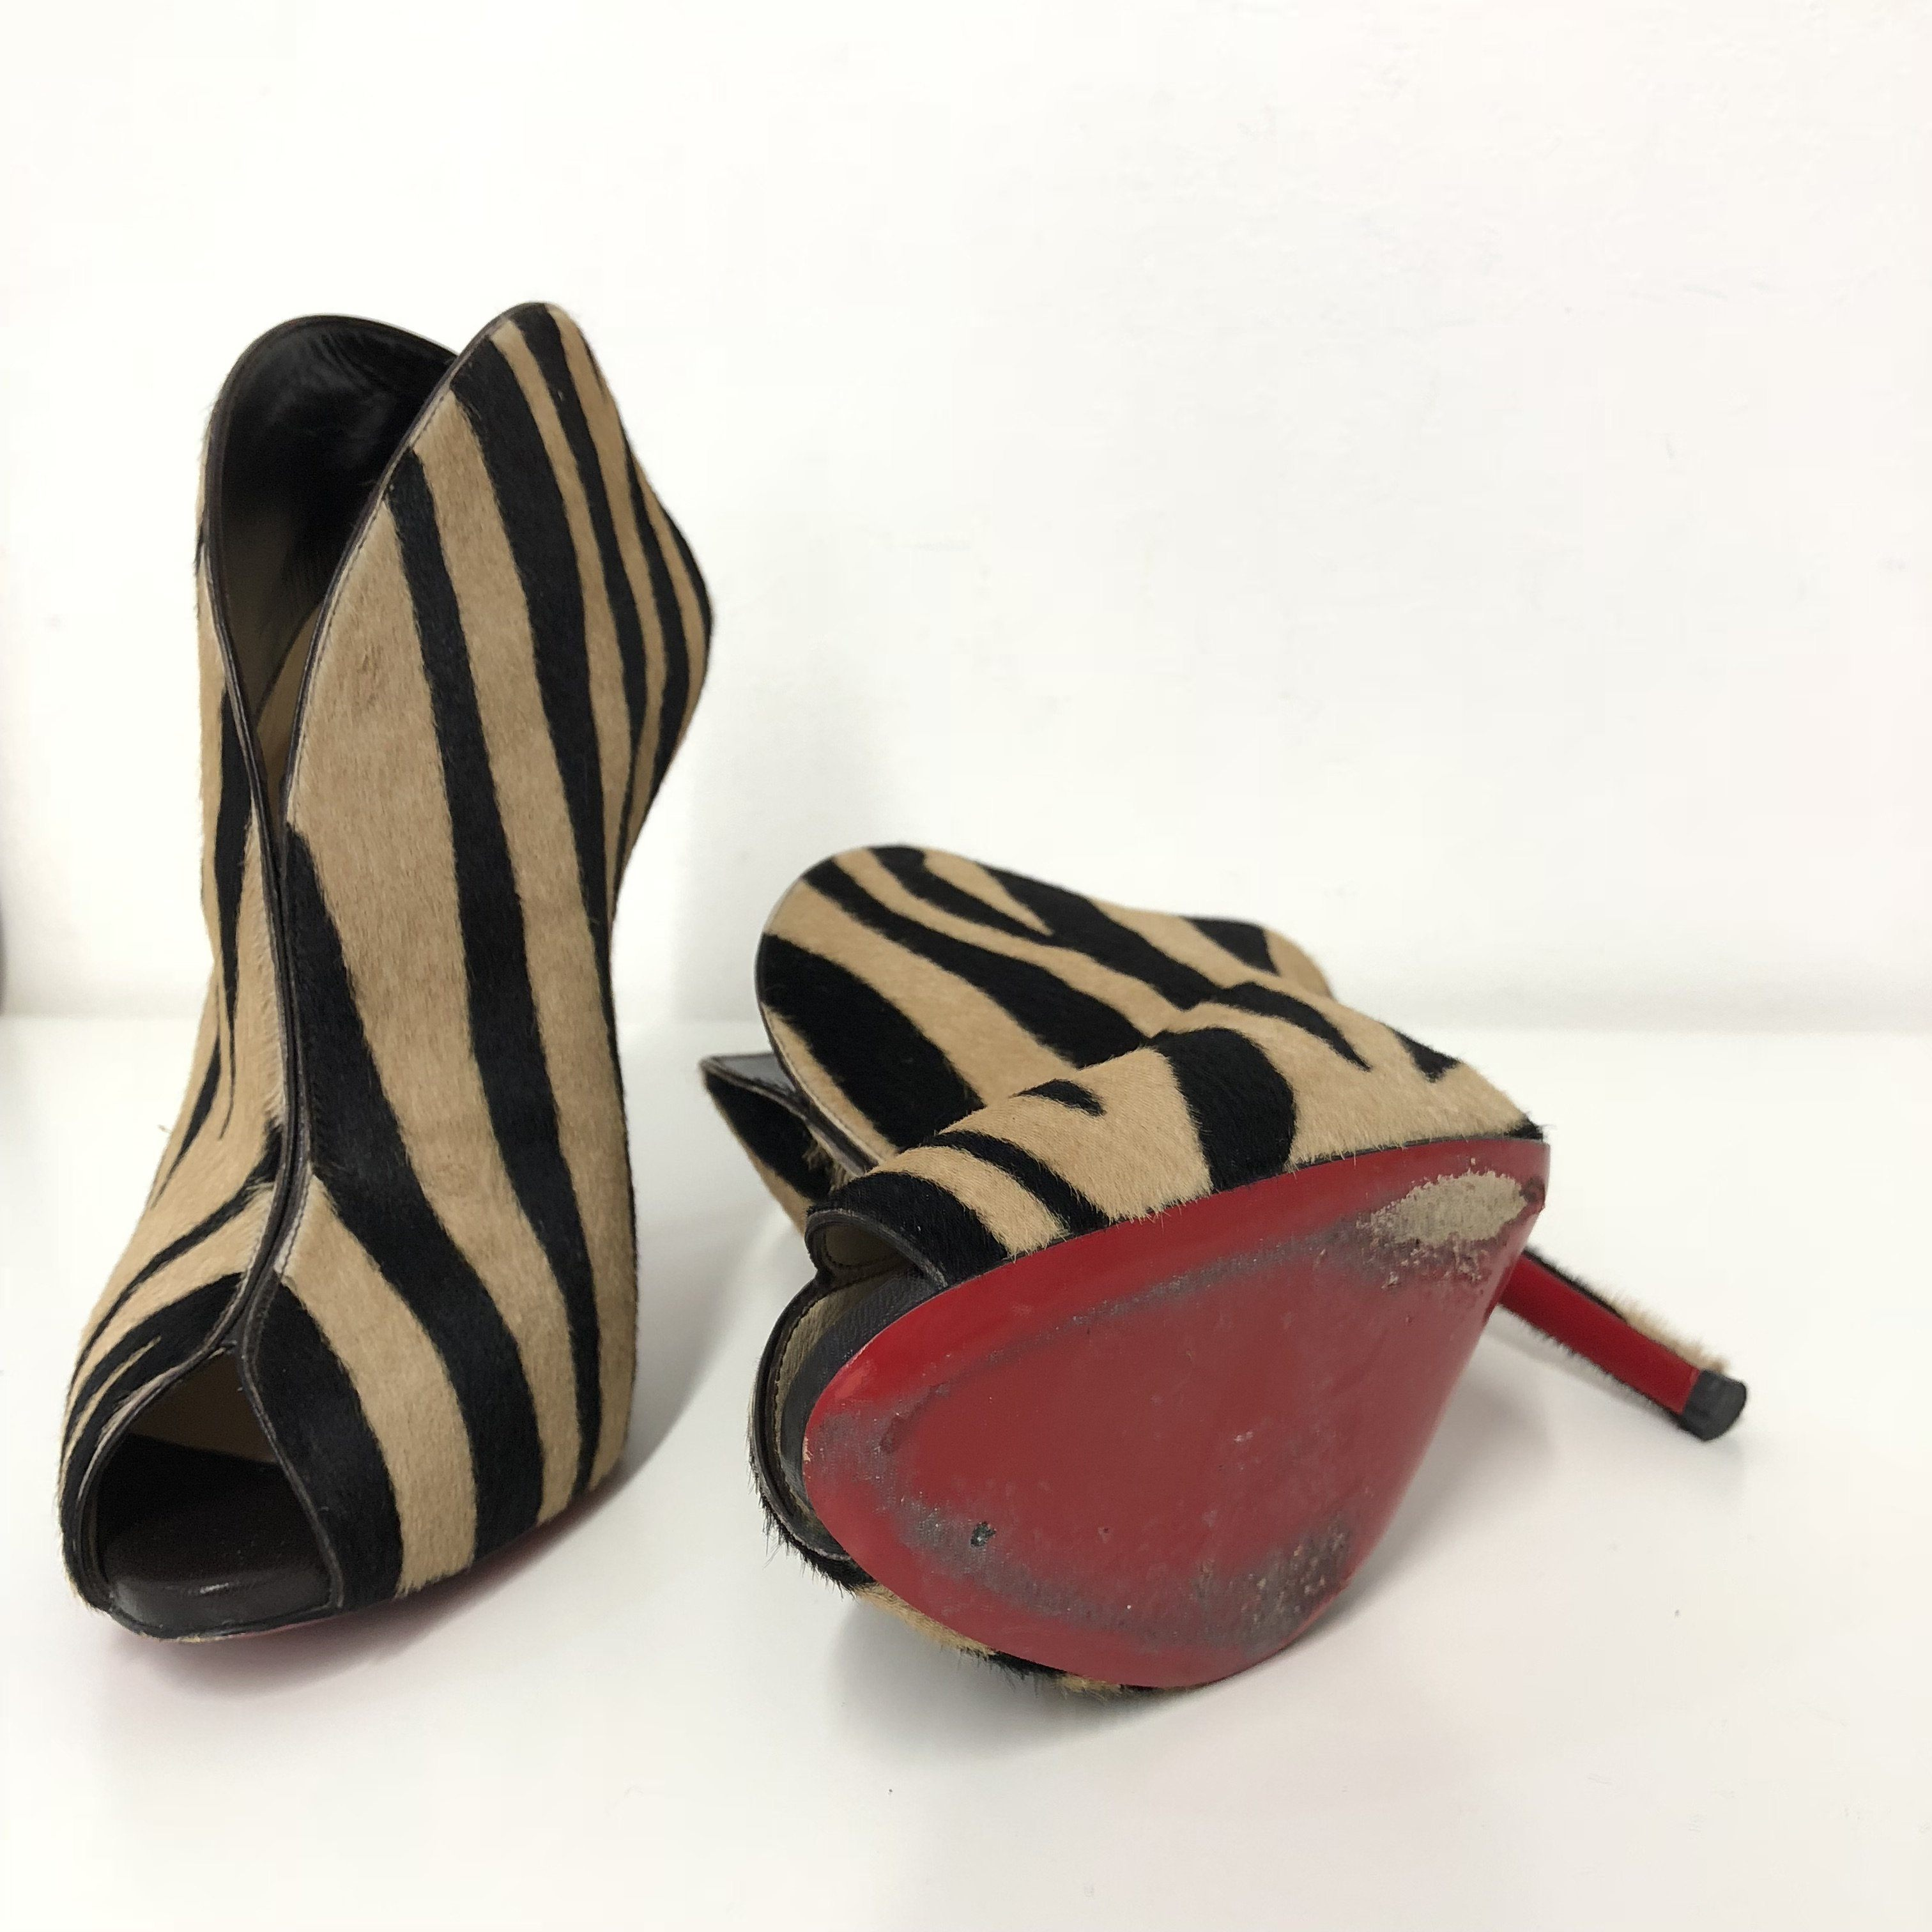 Christian Louboutin Chester Fille 120 Tiger-Print Calf Hair Ankle Boots